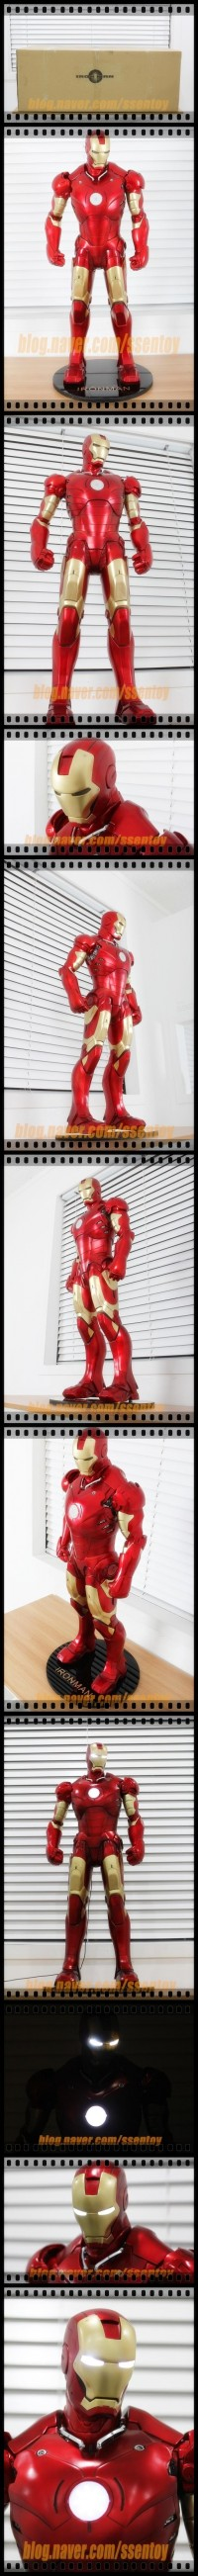 IRON MAN | The Plastic Figure World